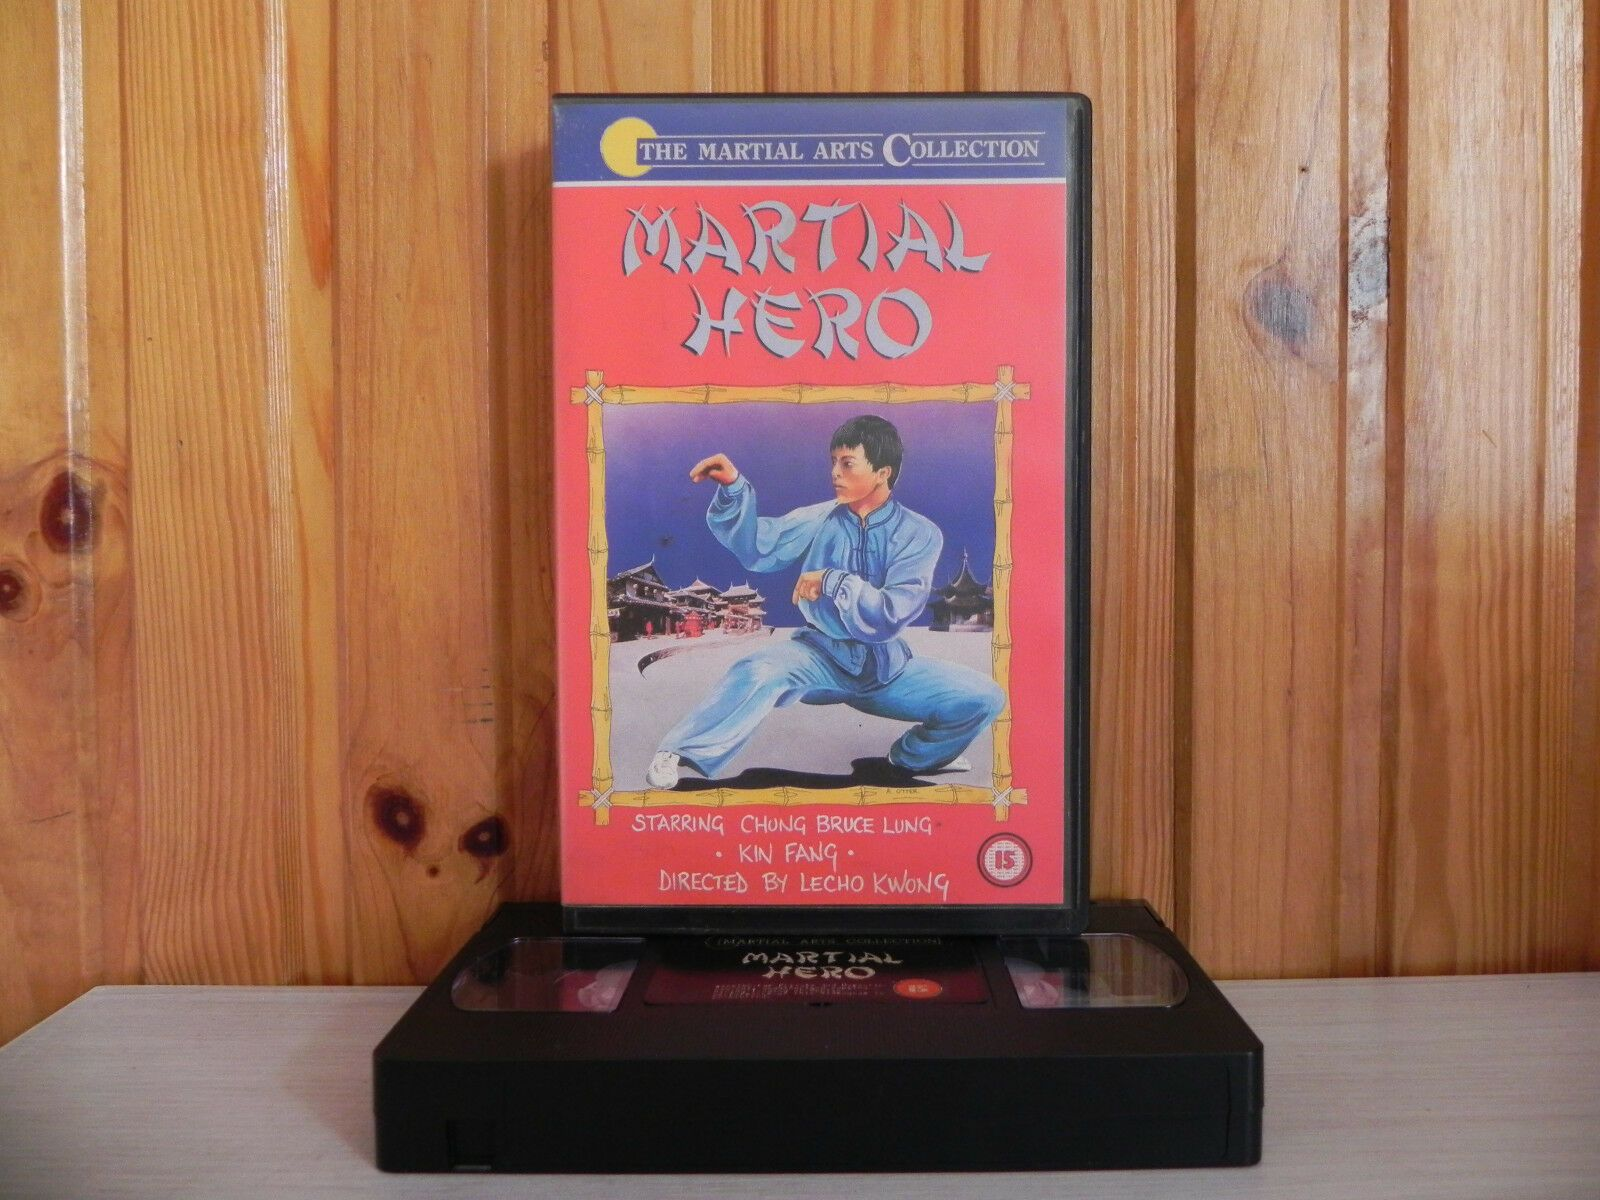 Martial Hero - Chueng Lung/Kin Fang/Lecho Kwong - Big-Box - Kung-Fu - VHS